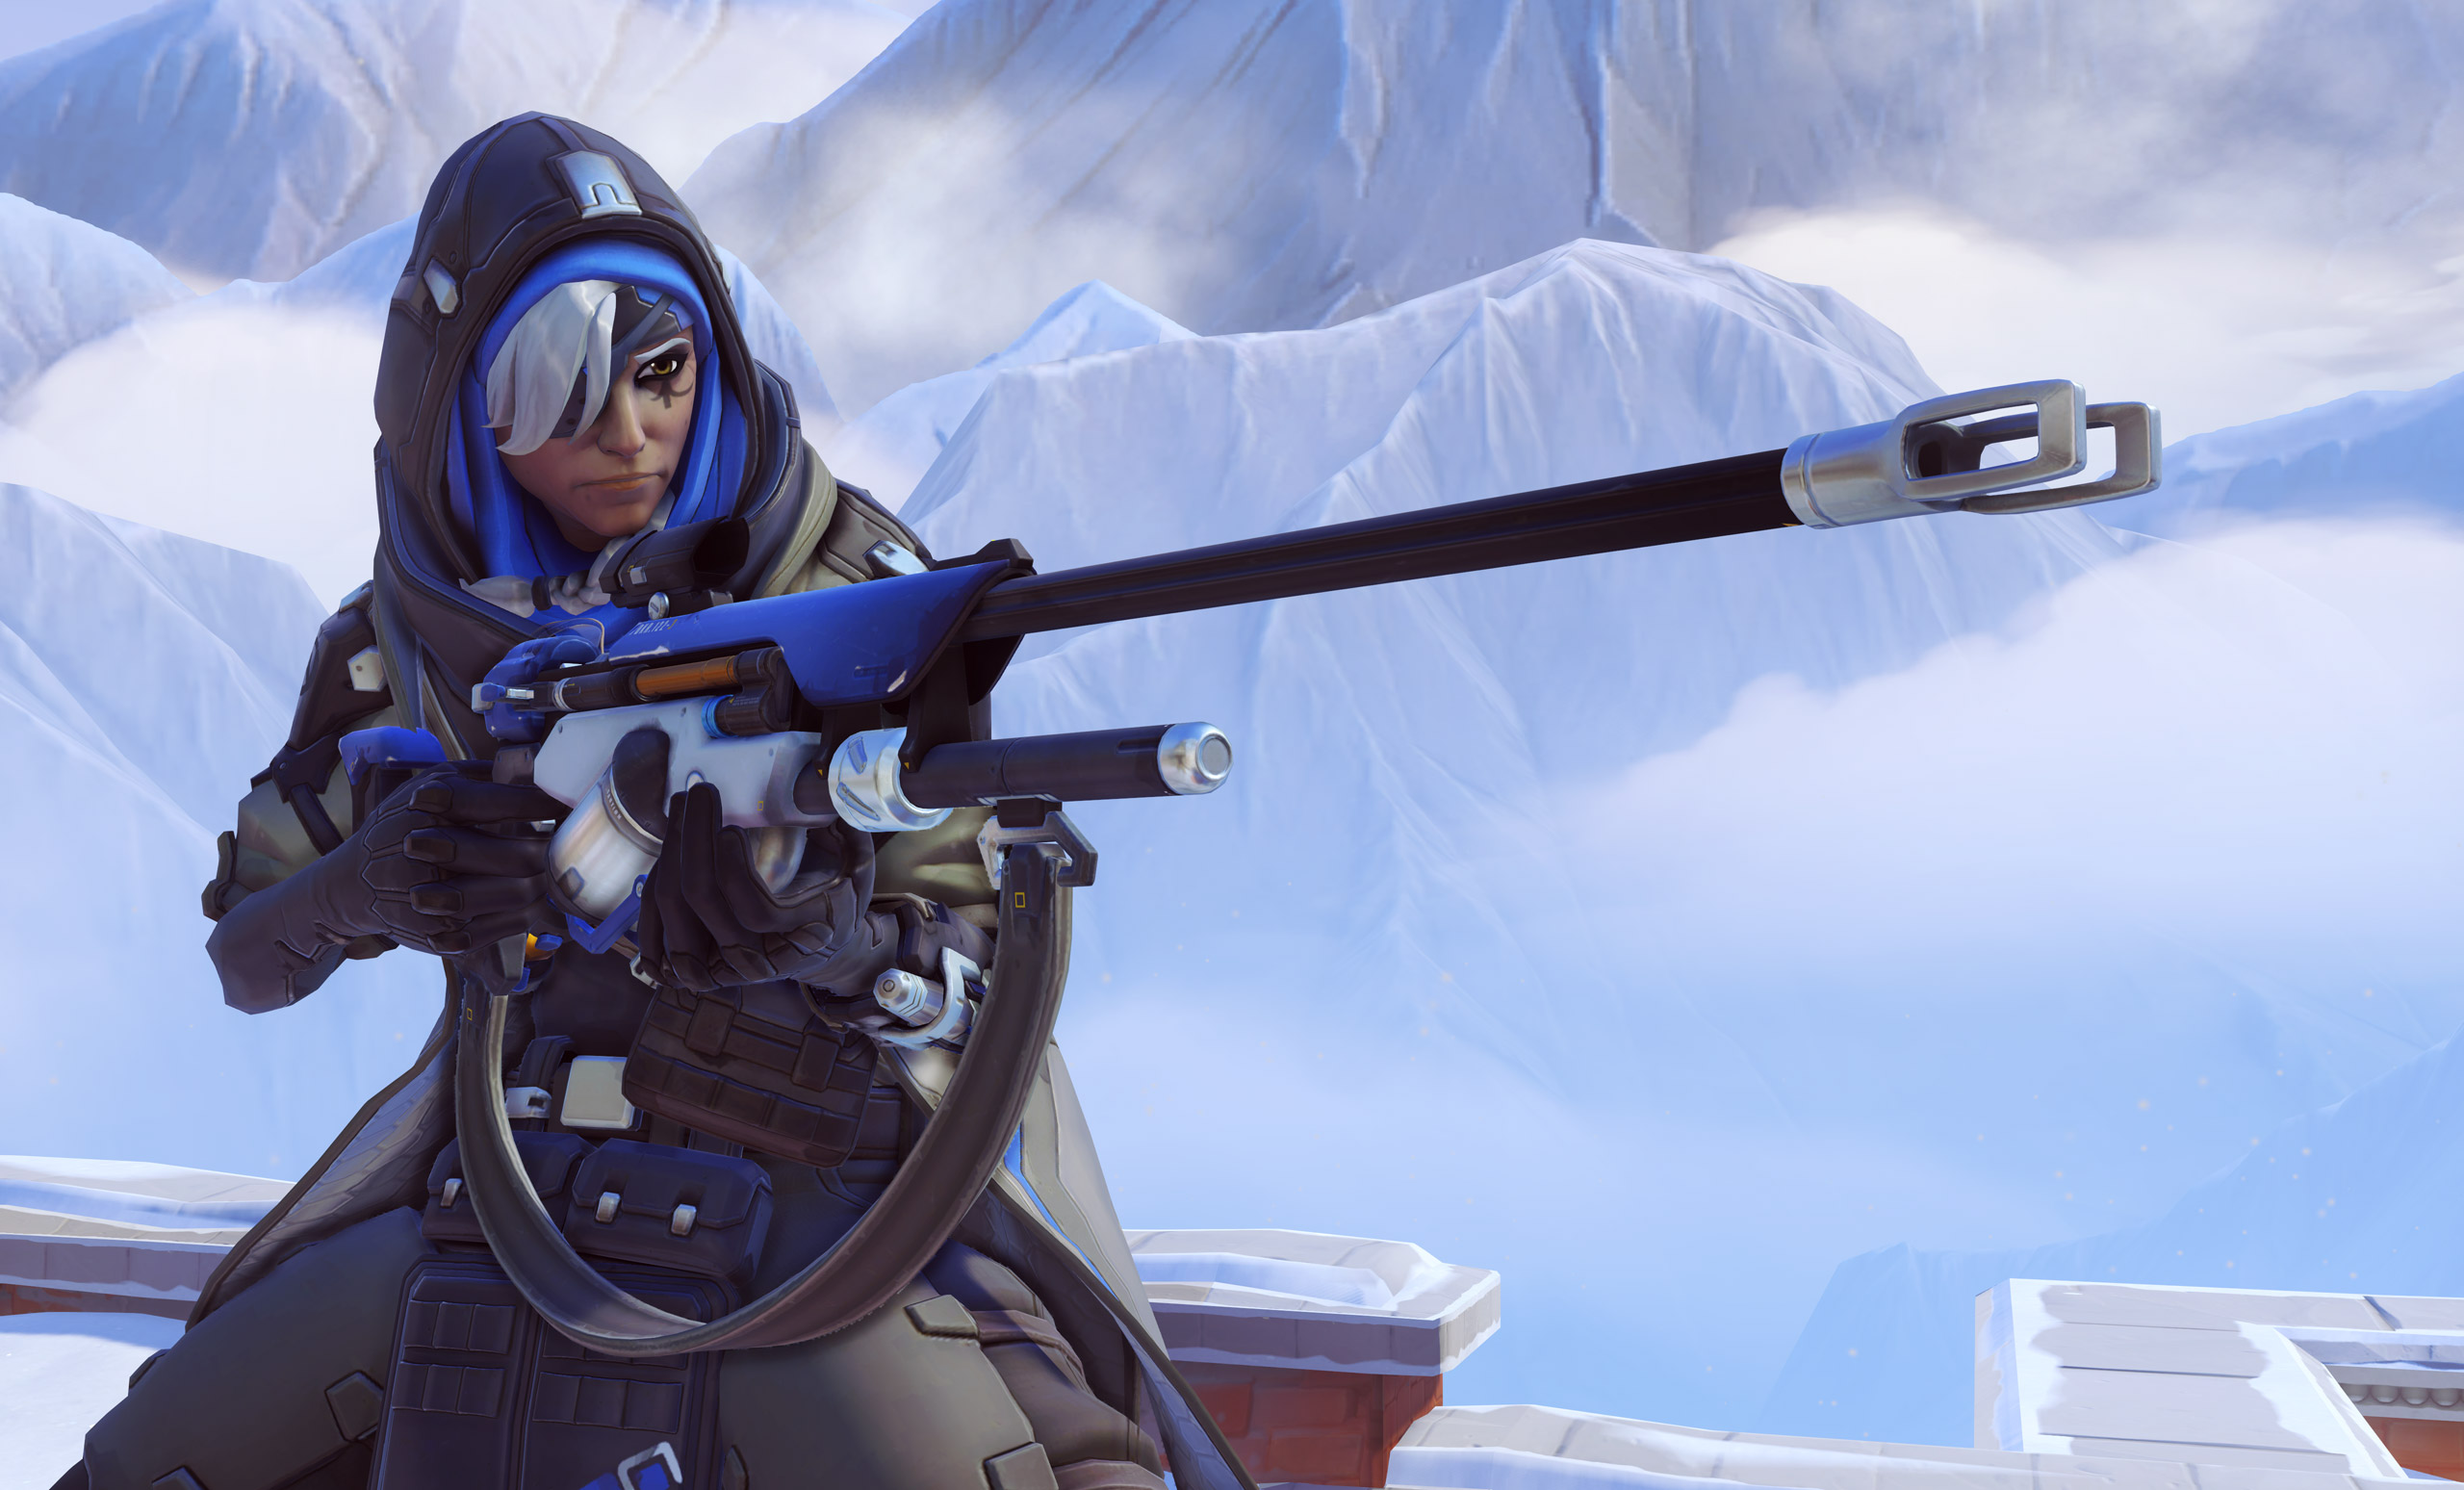 Blizzard drops first hints at next Overwatch character